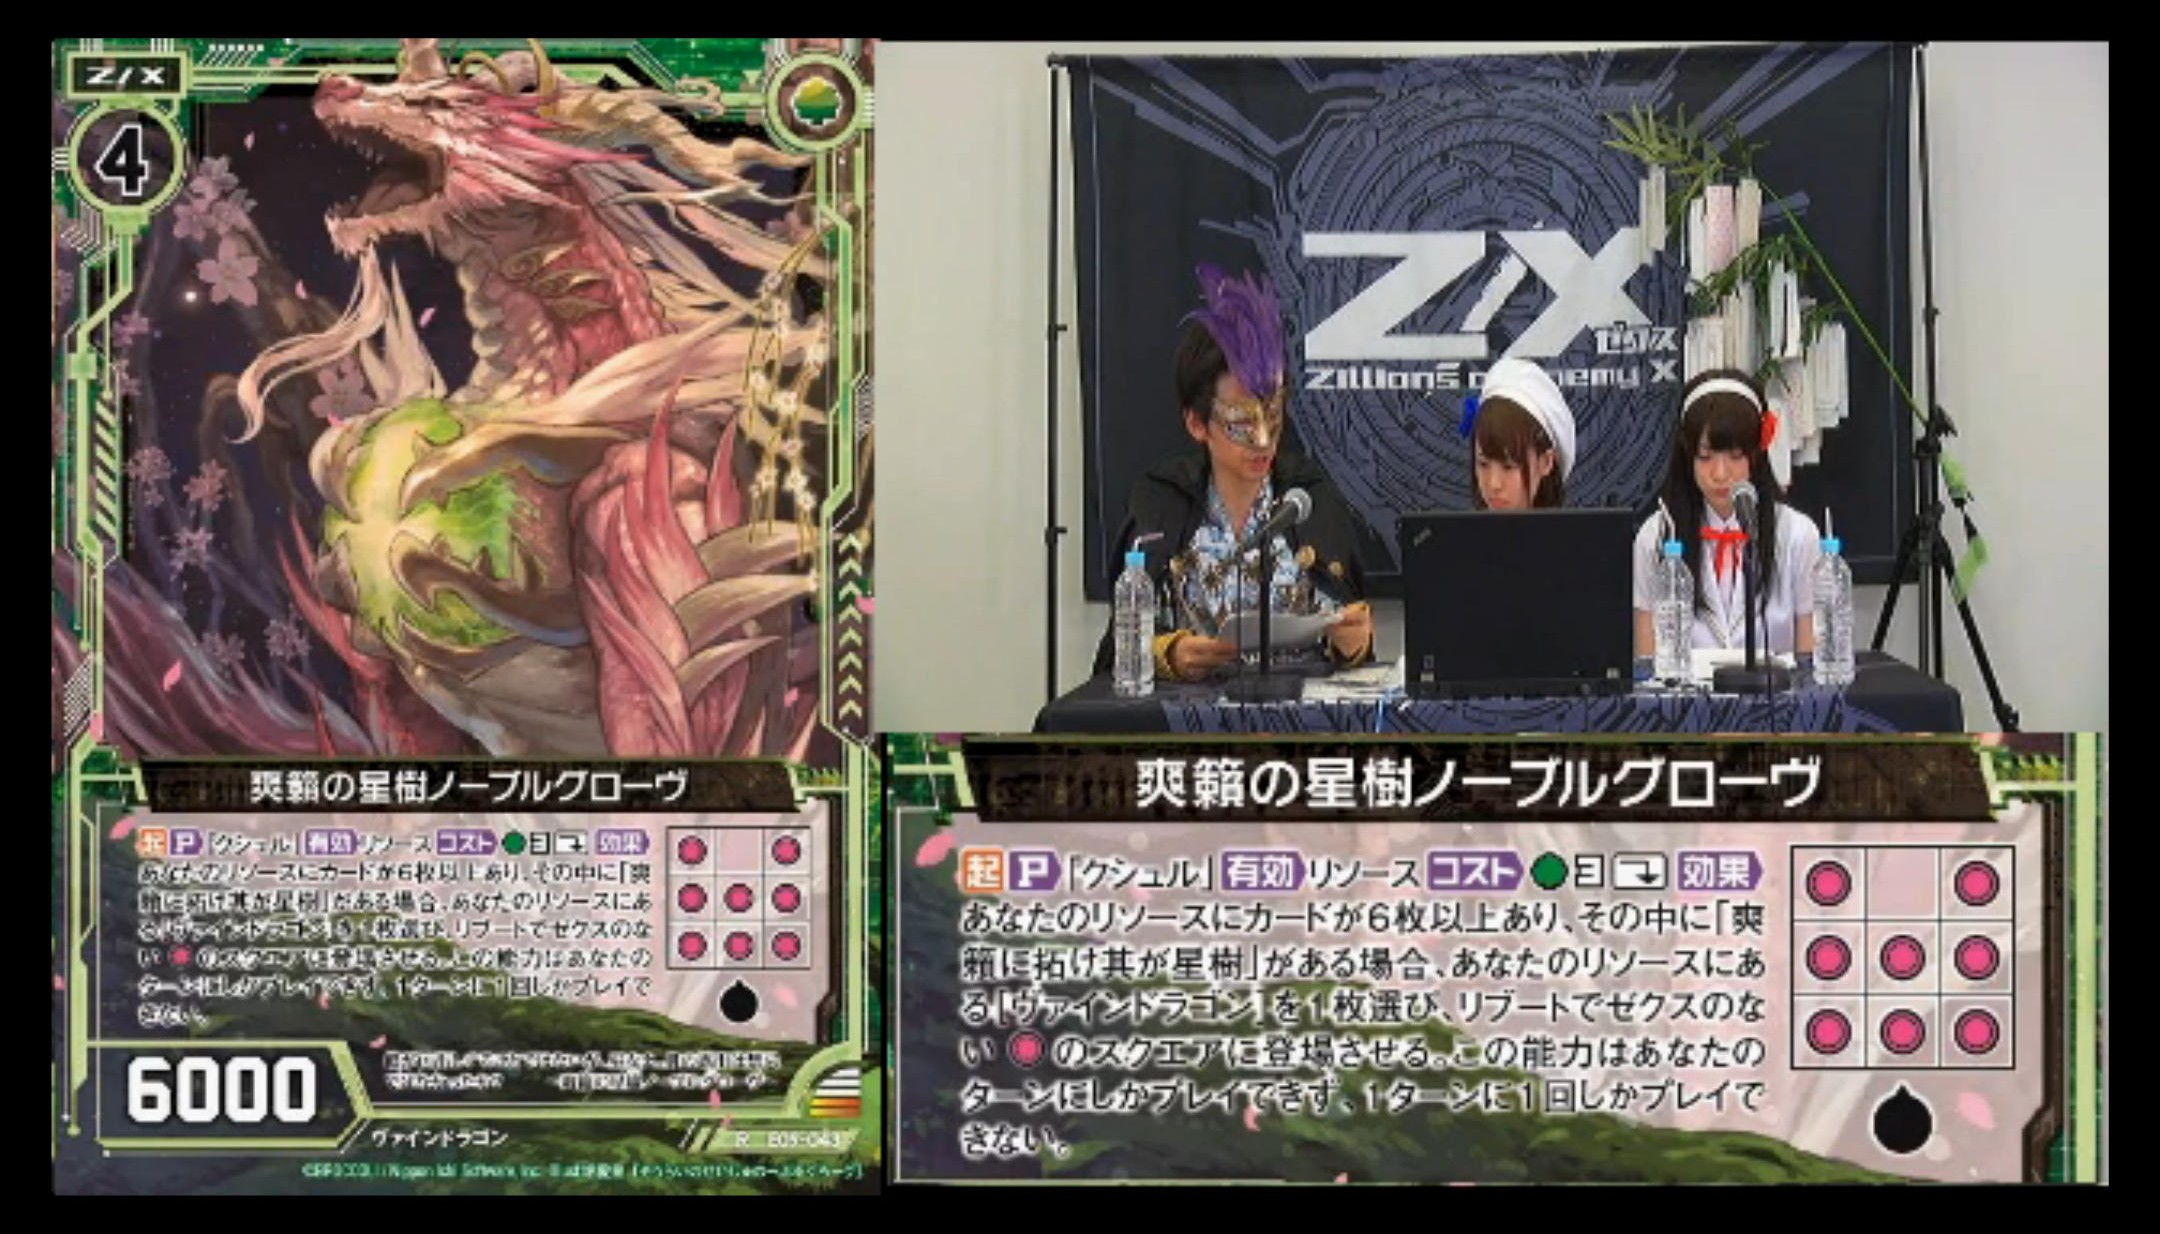 zx-ignition-broadcast-170712-057.jpg